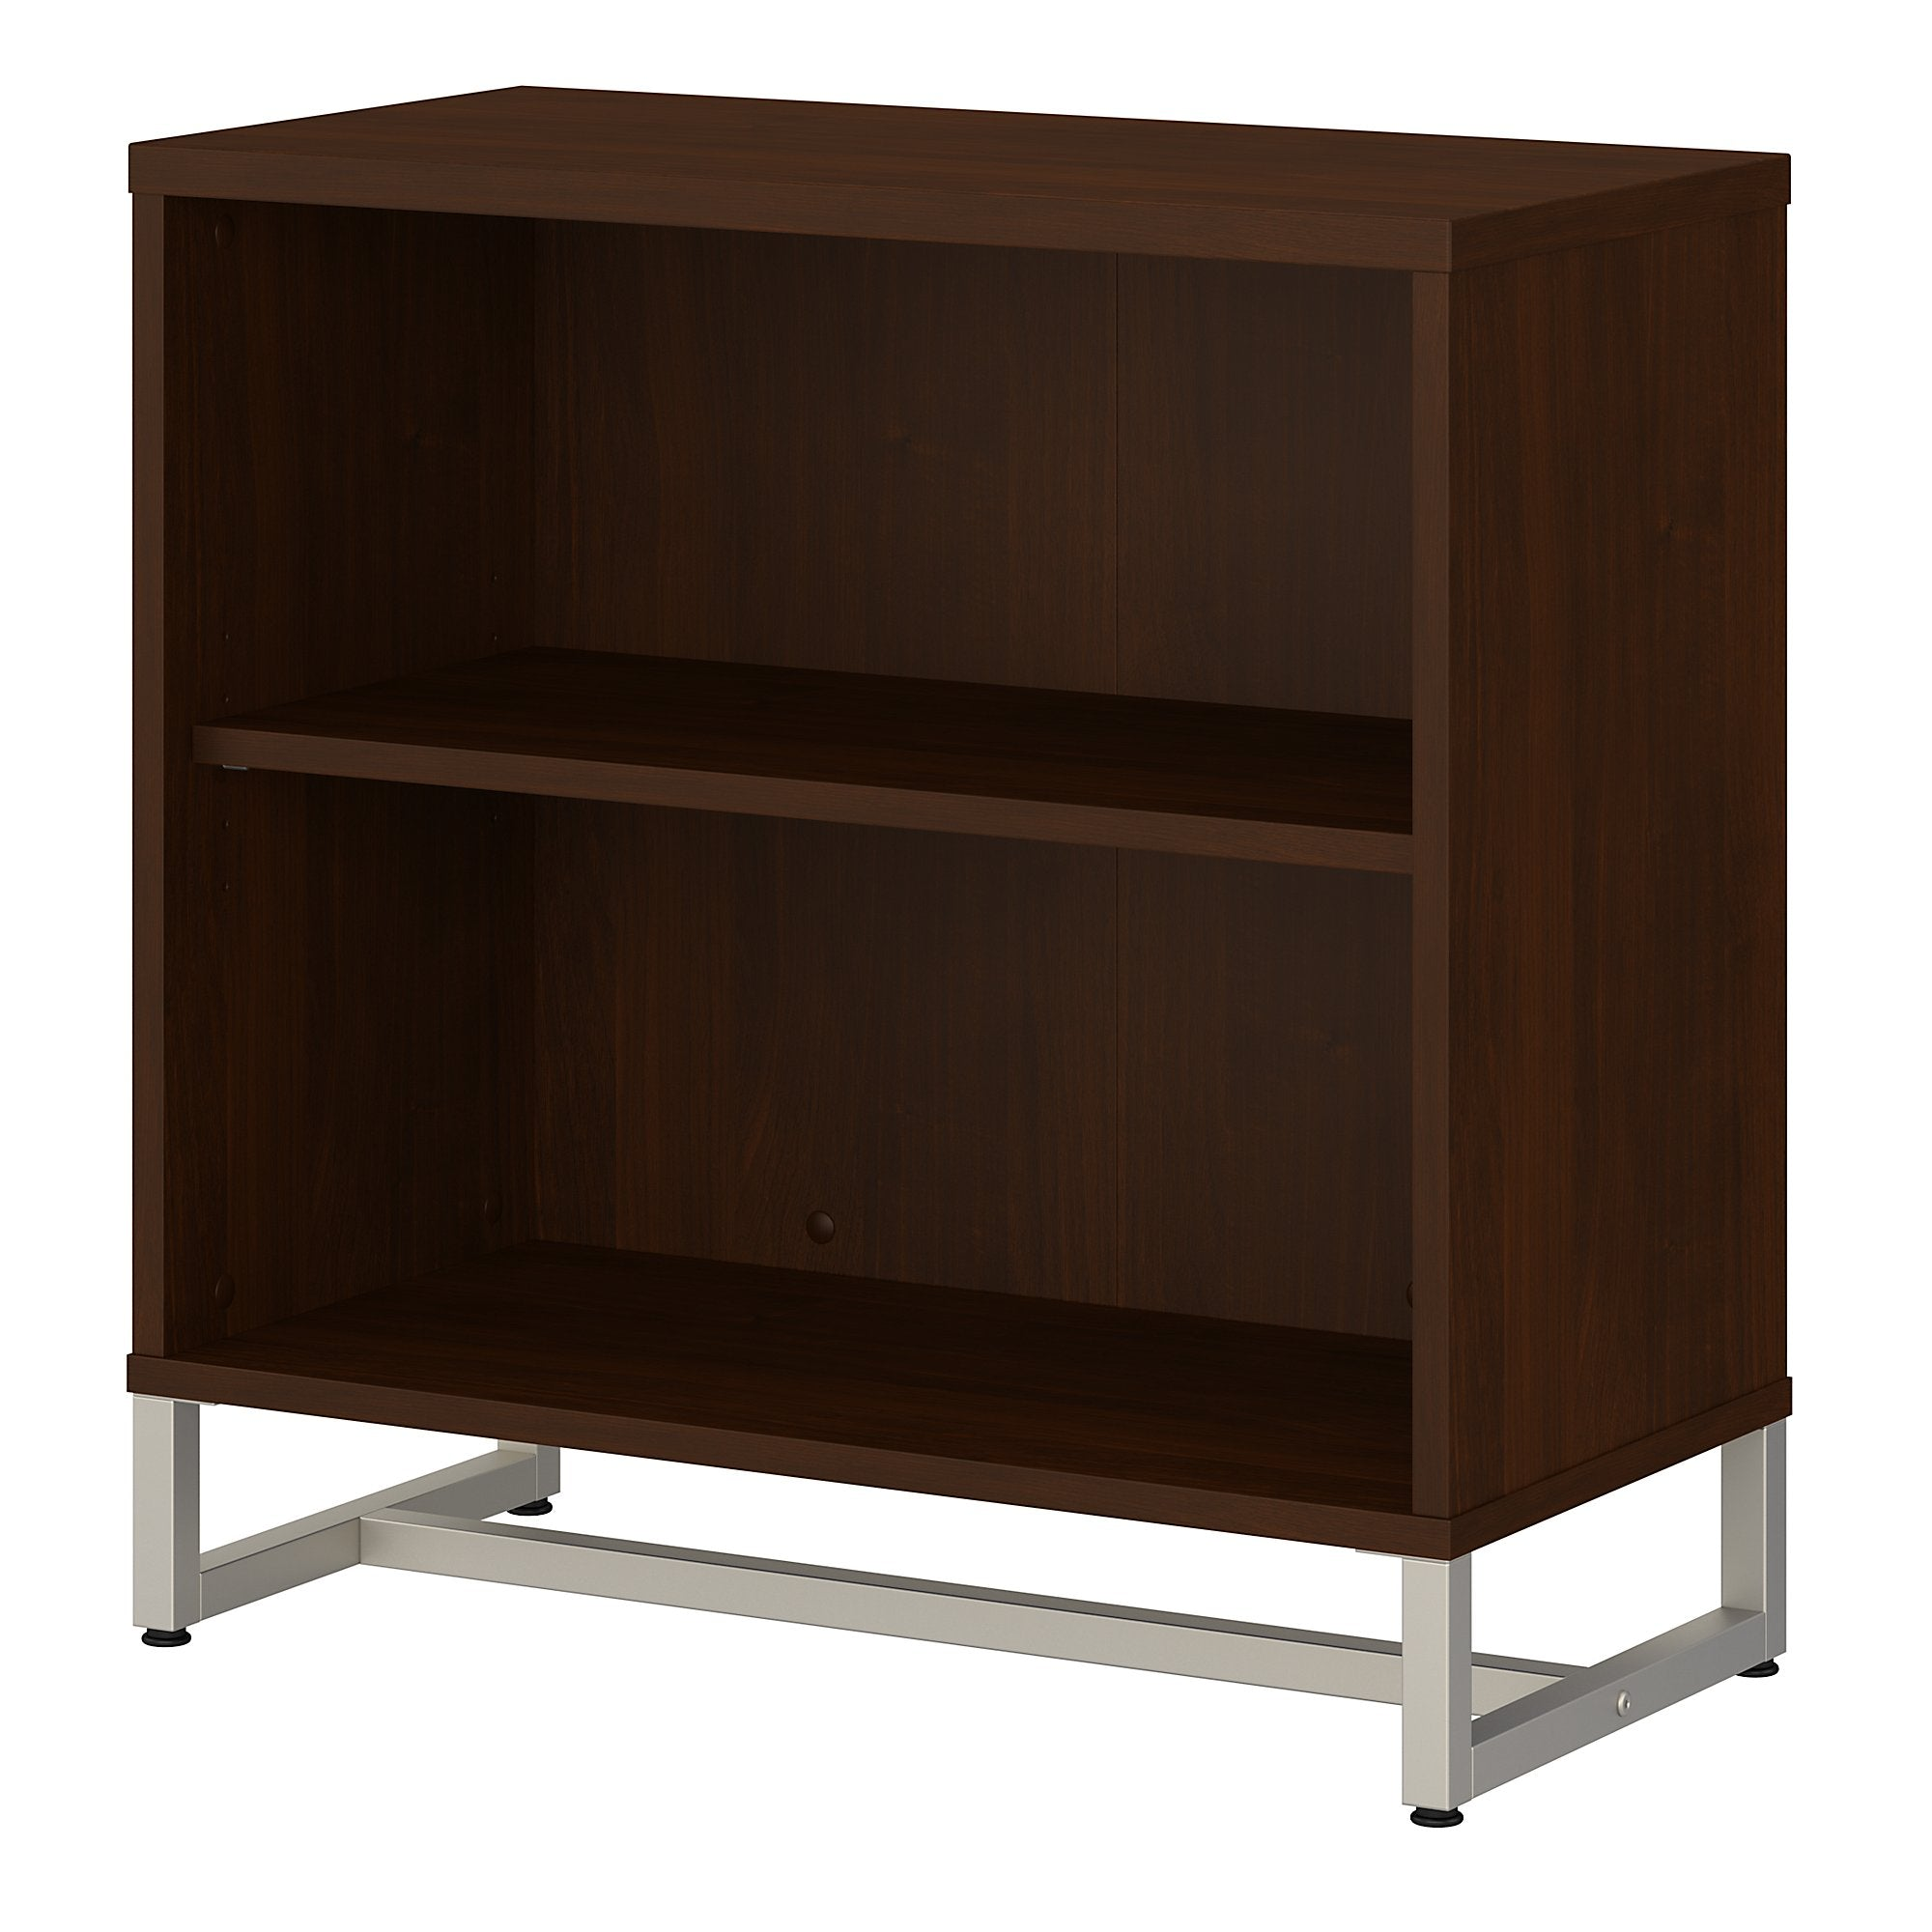 Office by kathy ireland® Method 2 Shelf Bookcase Cabinet